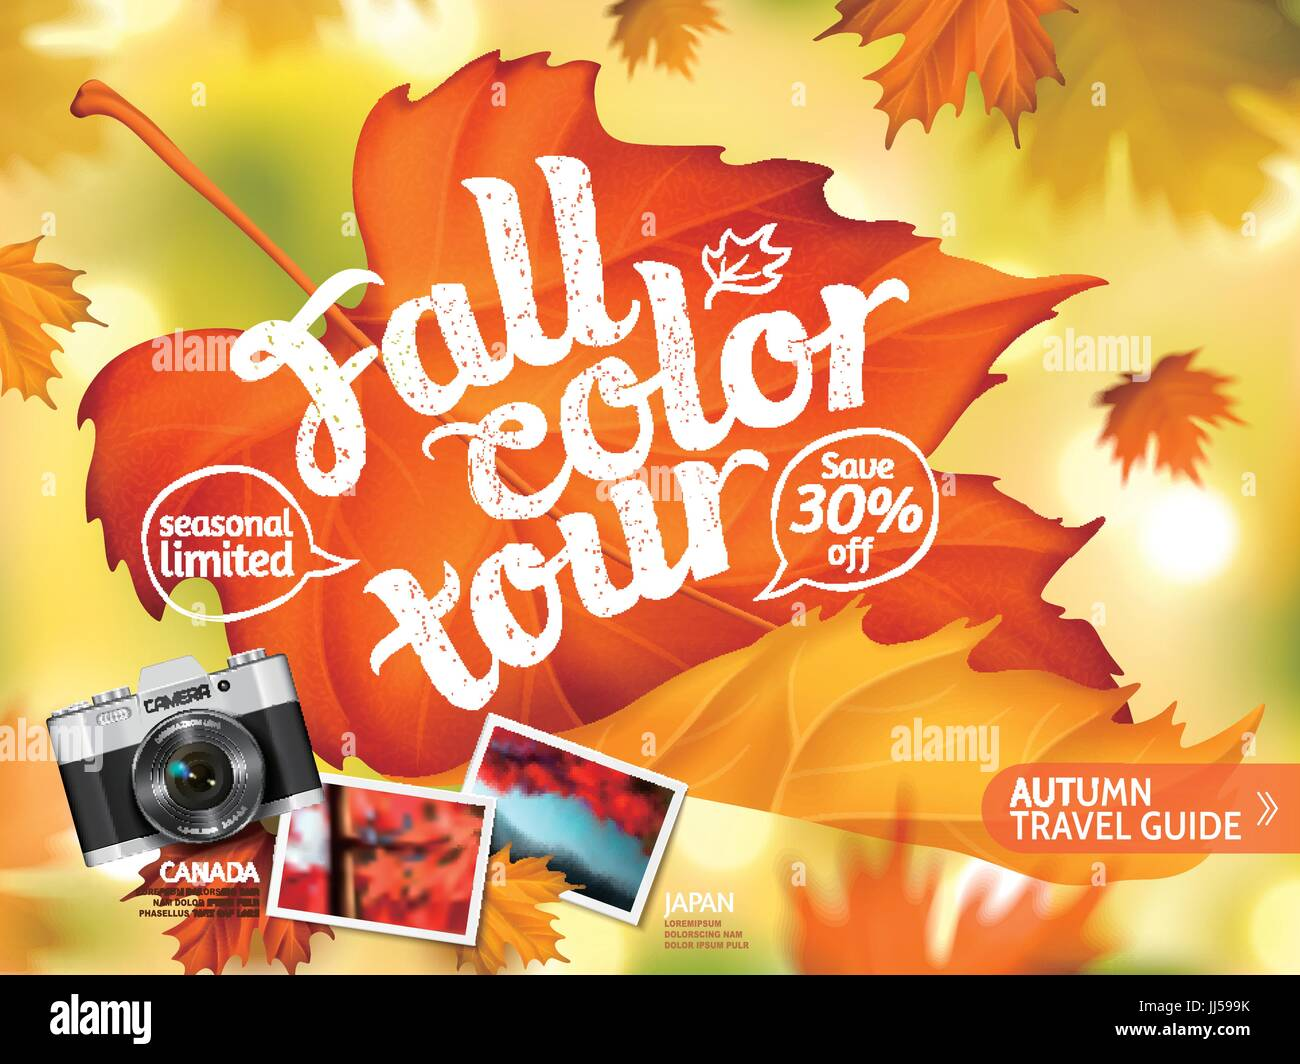 Fall color tour ads, autumn travel guide ads for travel agency or